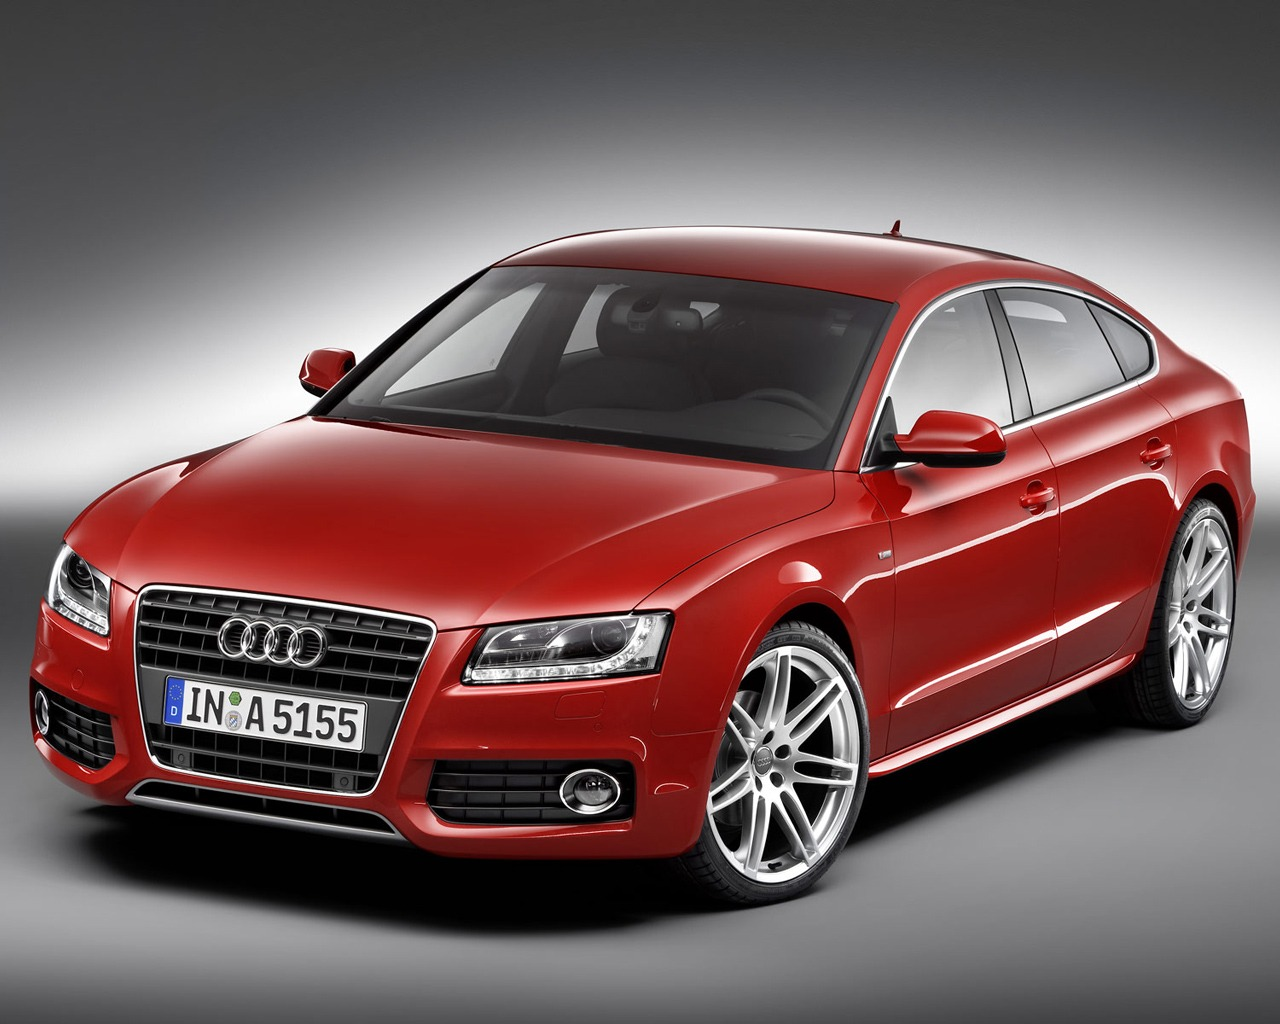 Audi A5 Sportback Wallpaper Cars Wallpapers In Format For 2010 Wiring Diagram